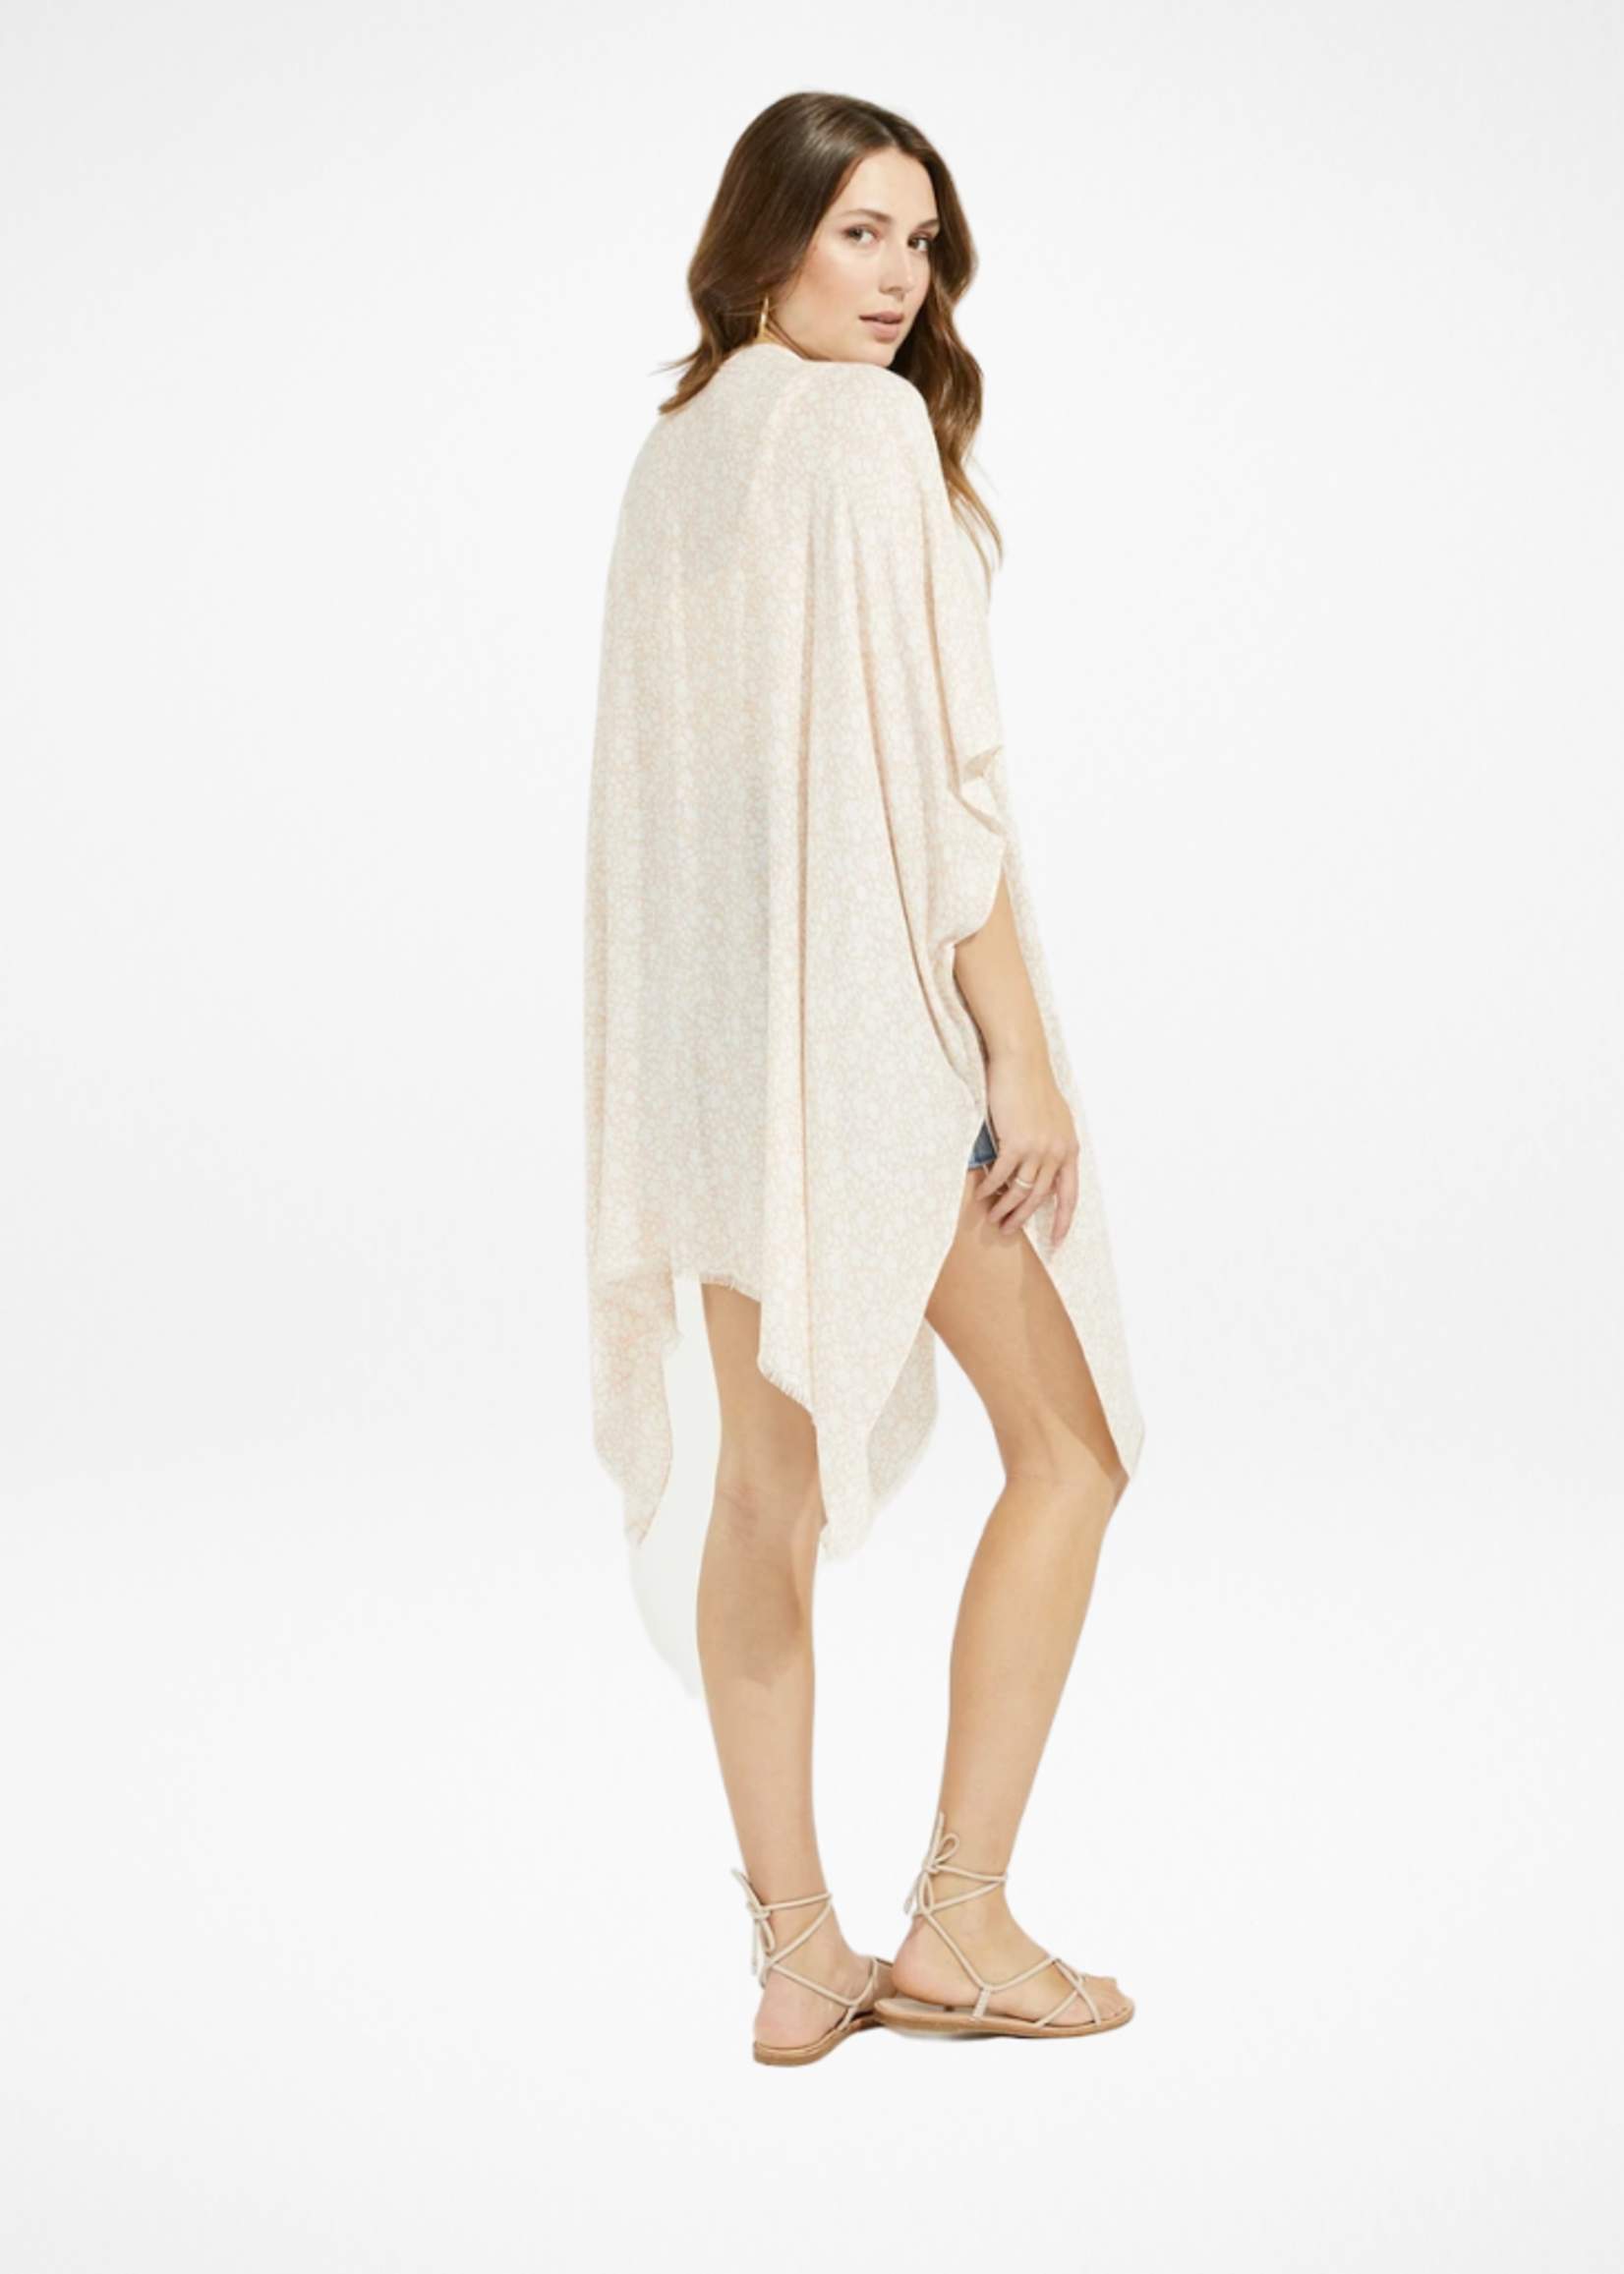 GENTLE FAWN 21 GF 4 GALAXY COVER-UP